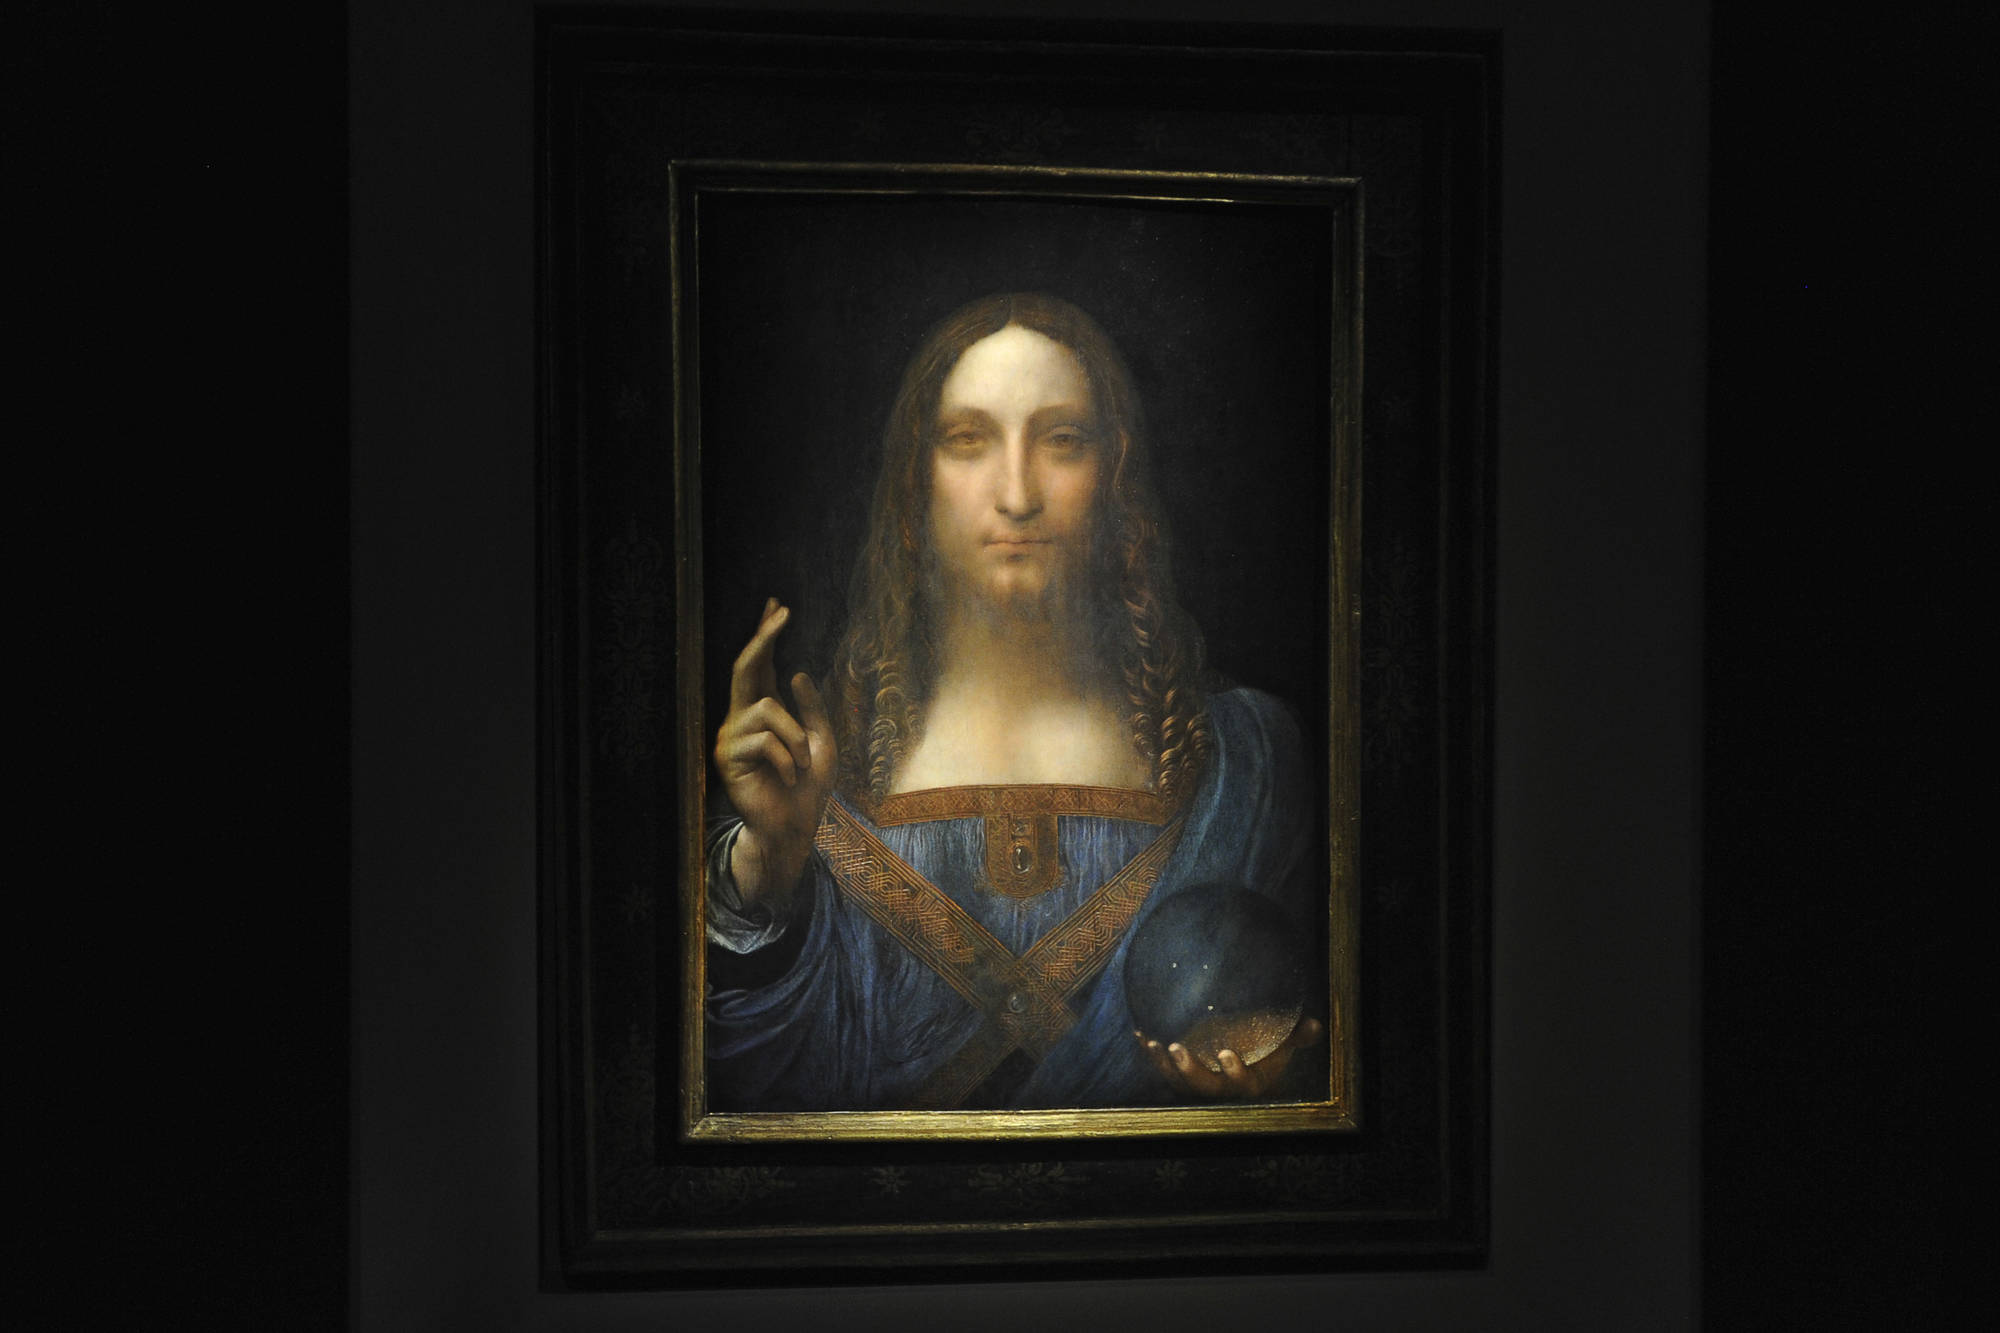 Il salvator mundi di leonardo venduto all 39 asta per 450 for Milioni di dollari piantine